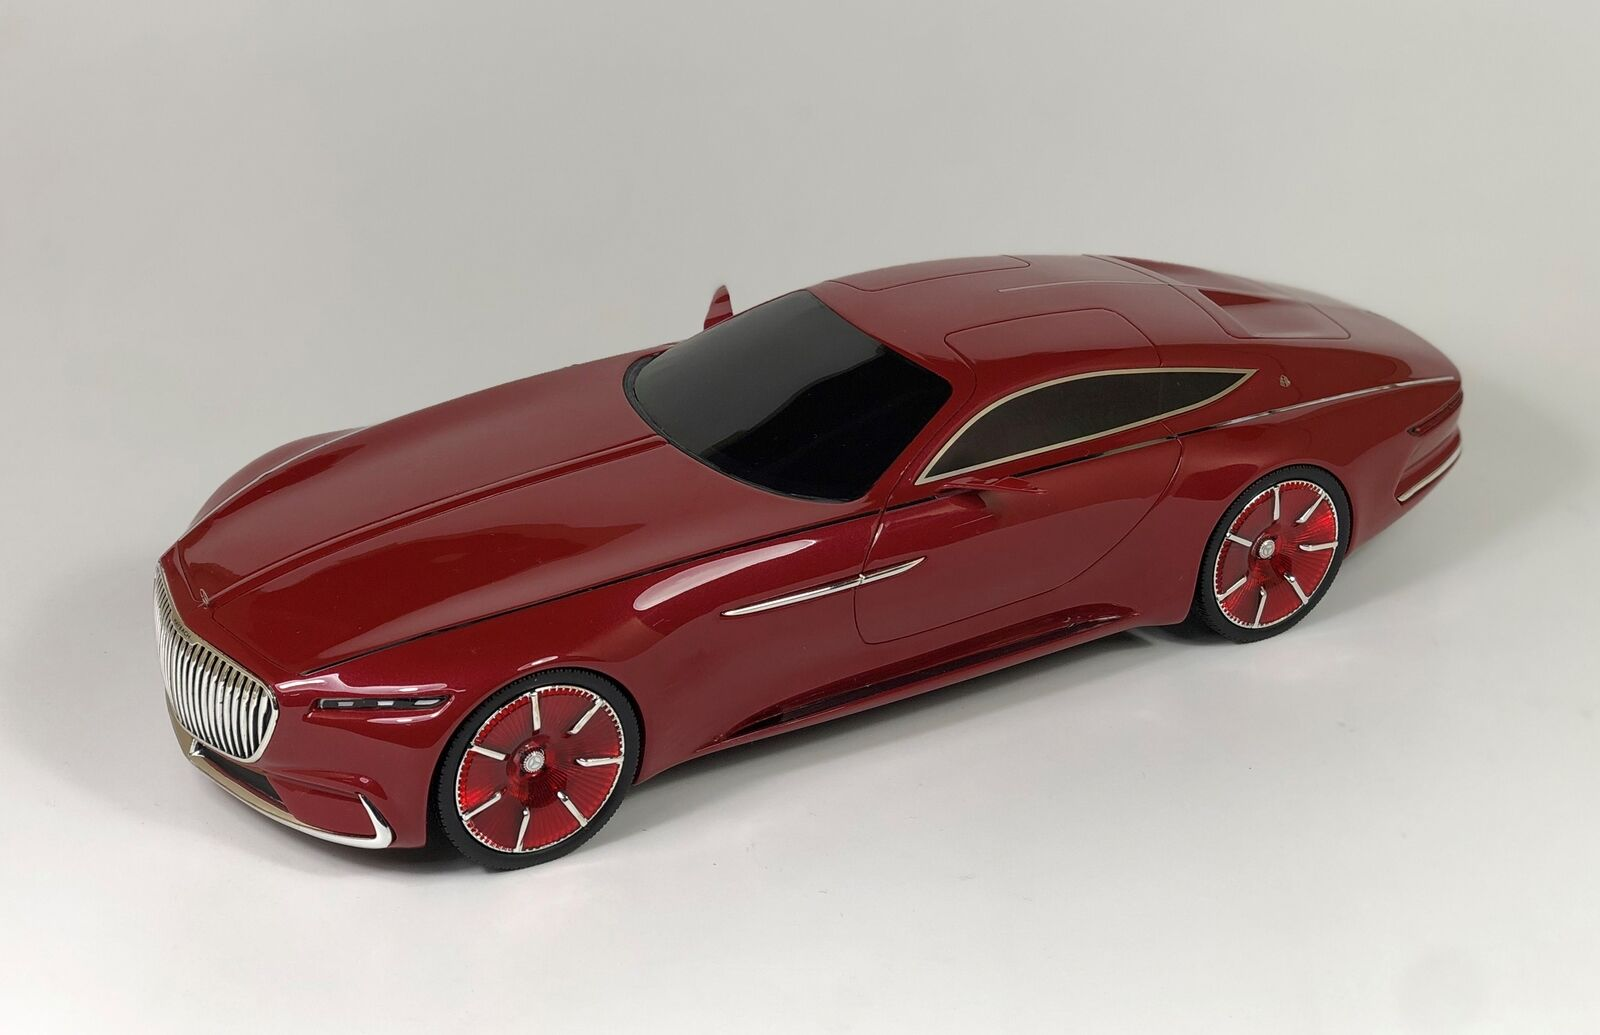 Mercedes-Benz Maybach Vision 6 Coupe Red Scale 1 18